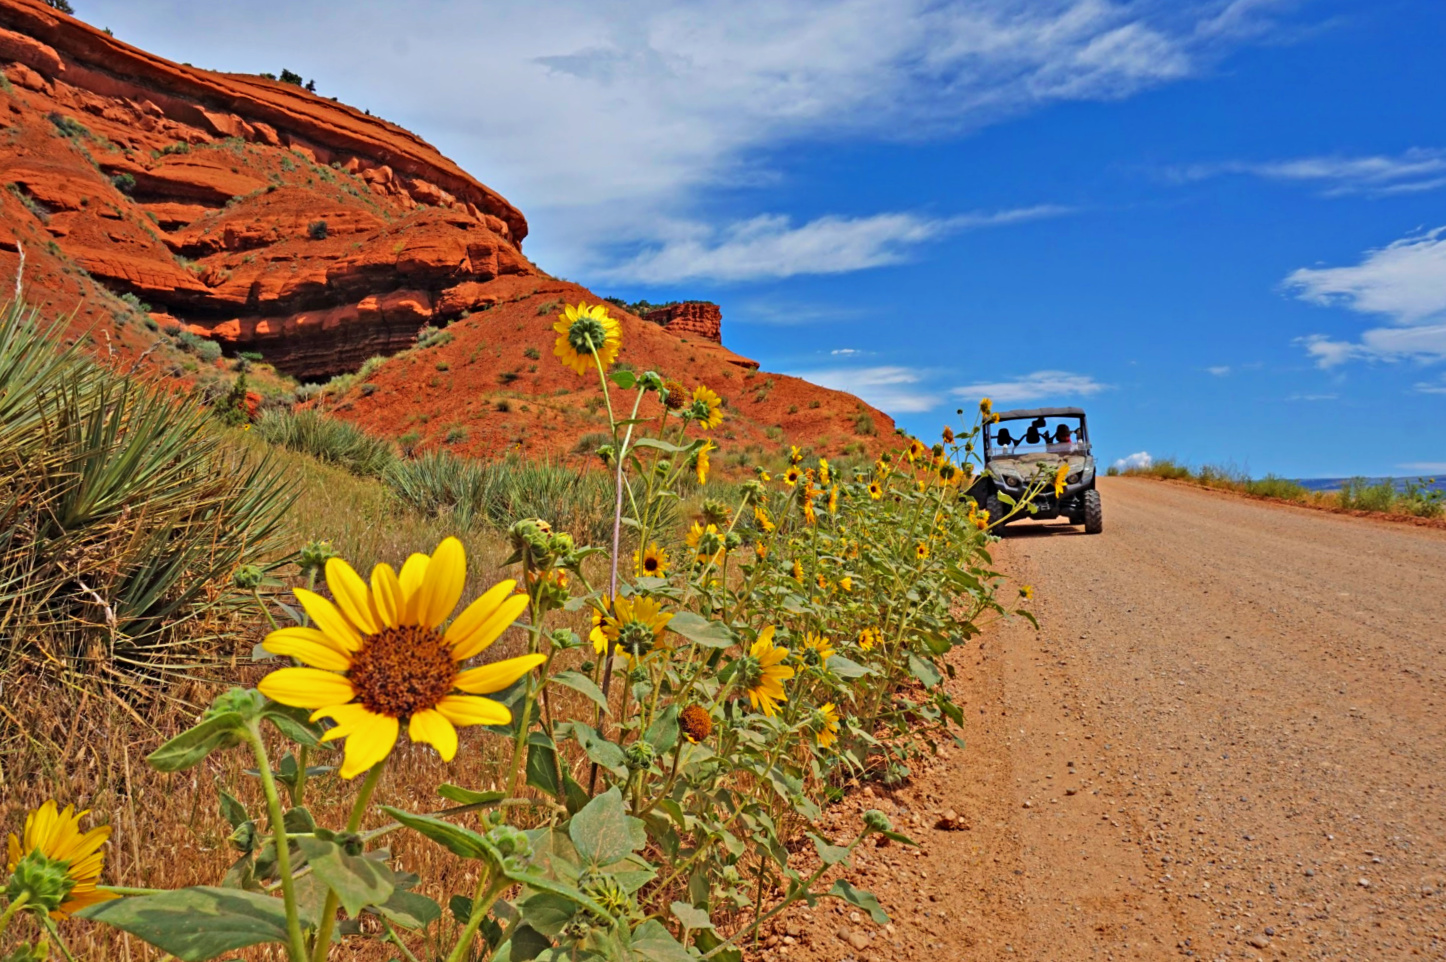 Wild West vacation. Sunflowers along a dirt road at Red Reflet Ranch in Wyoming.